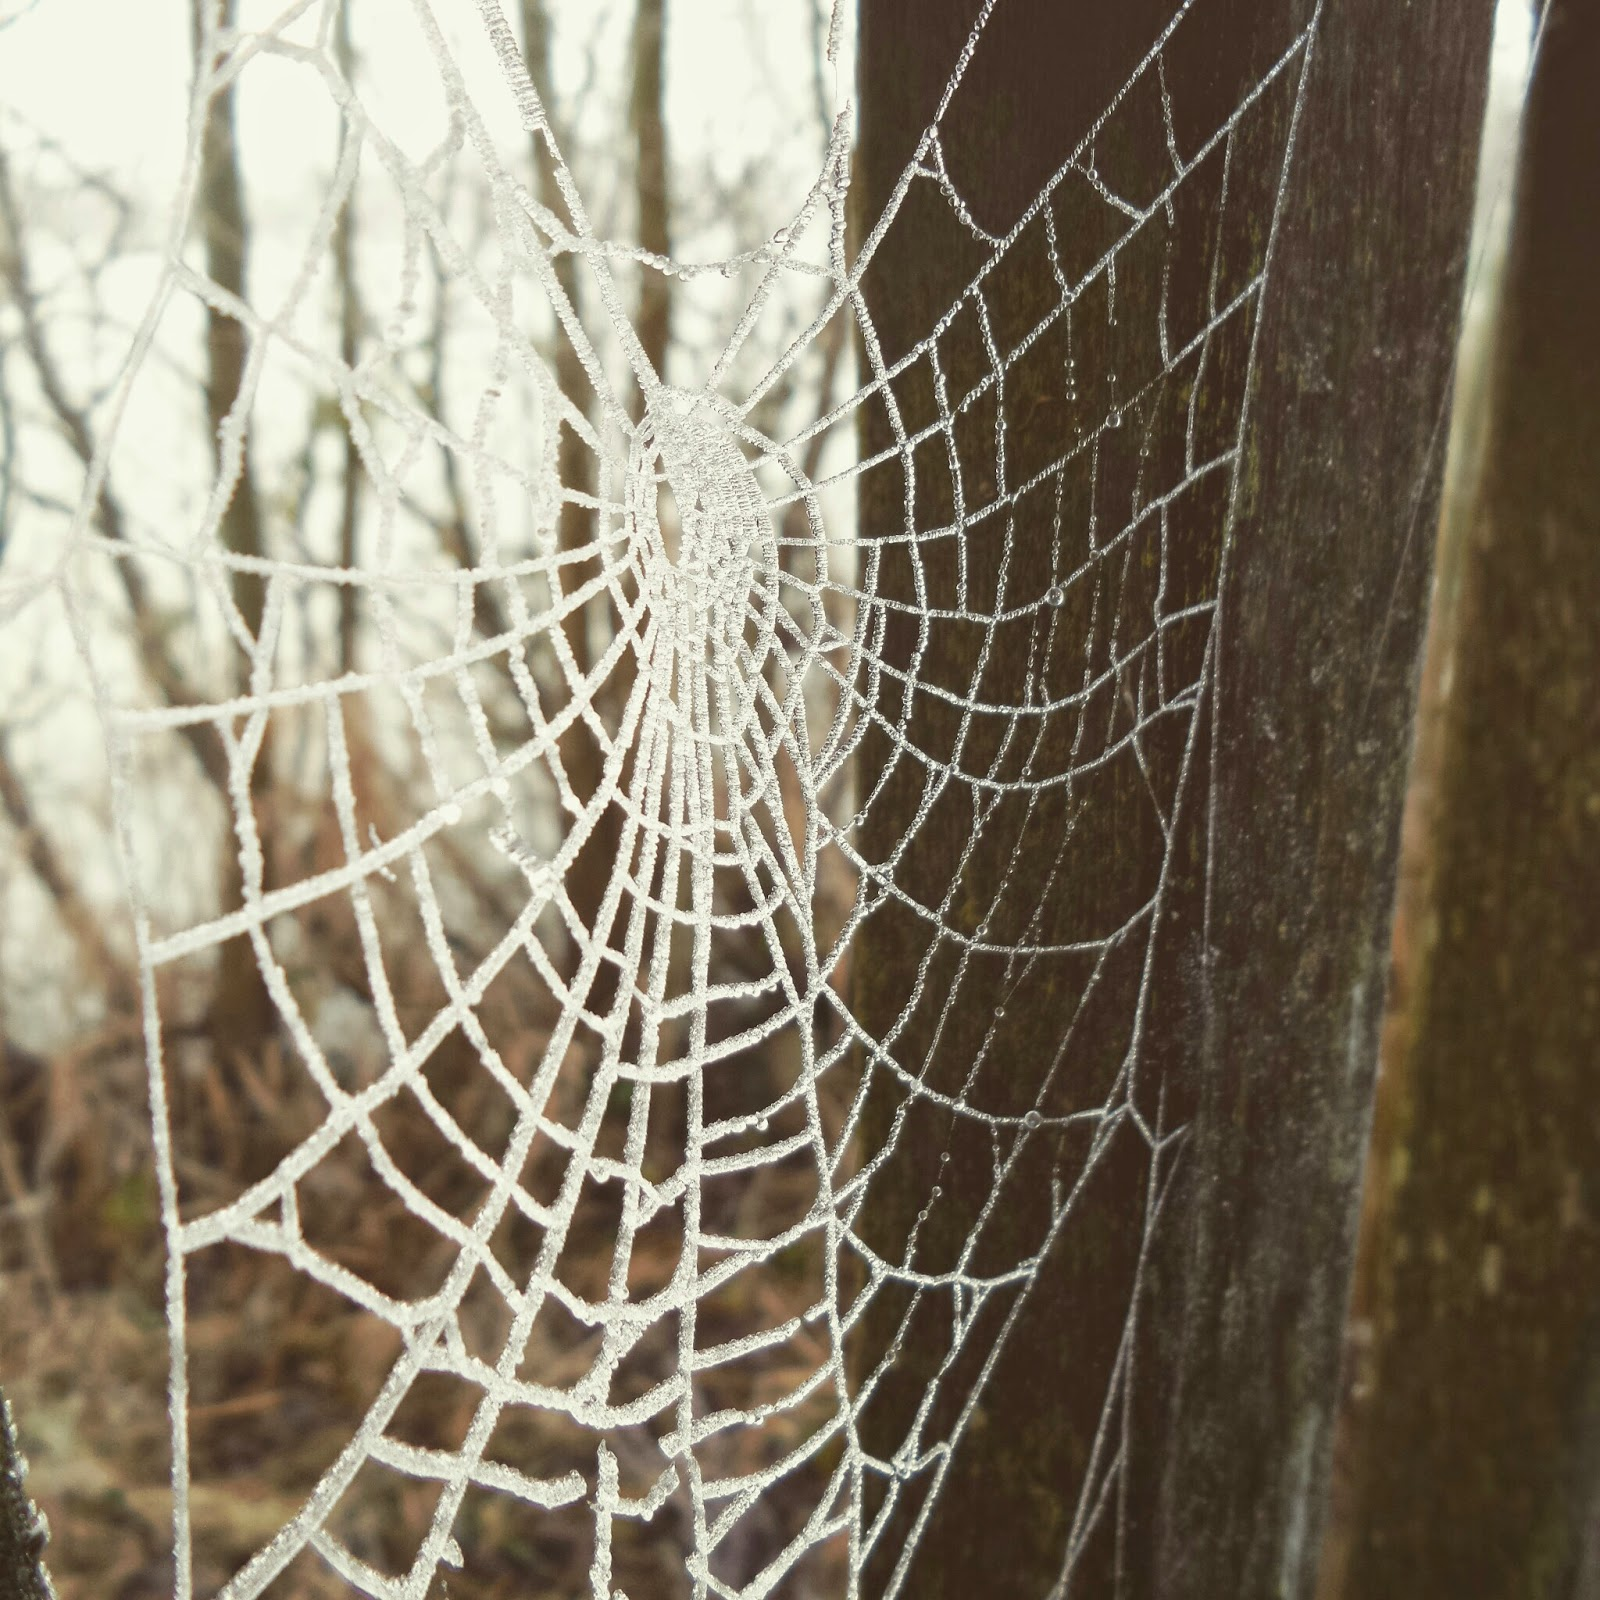 An icy Spider Web